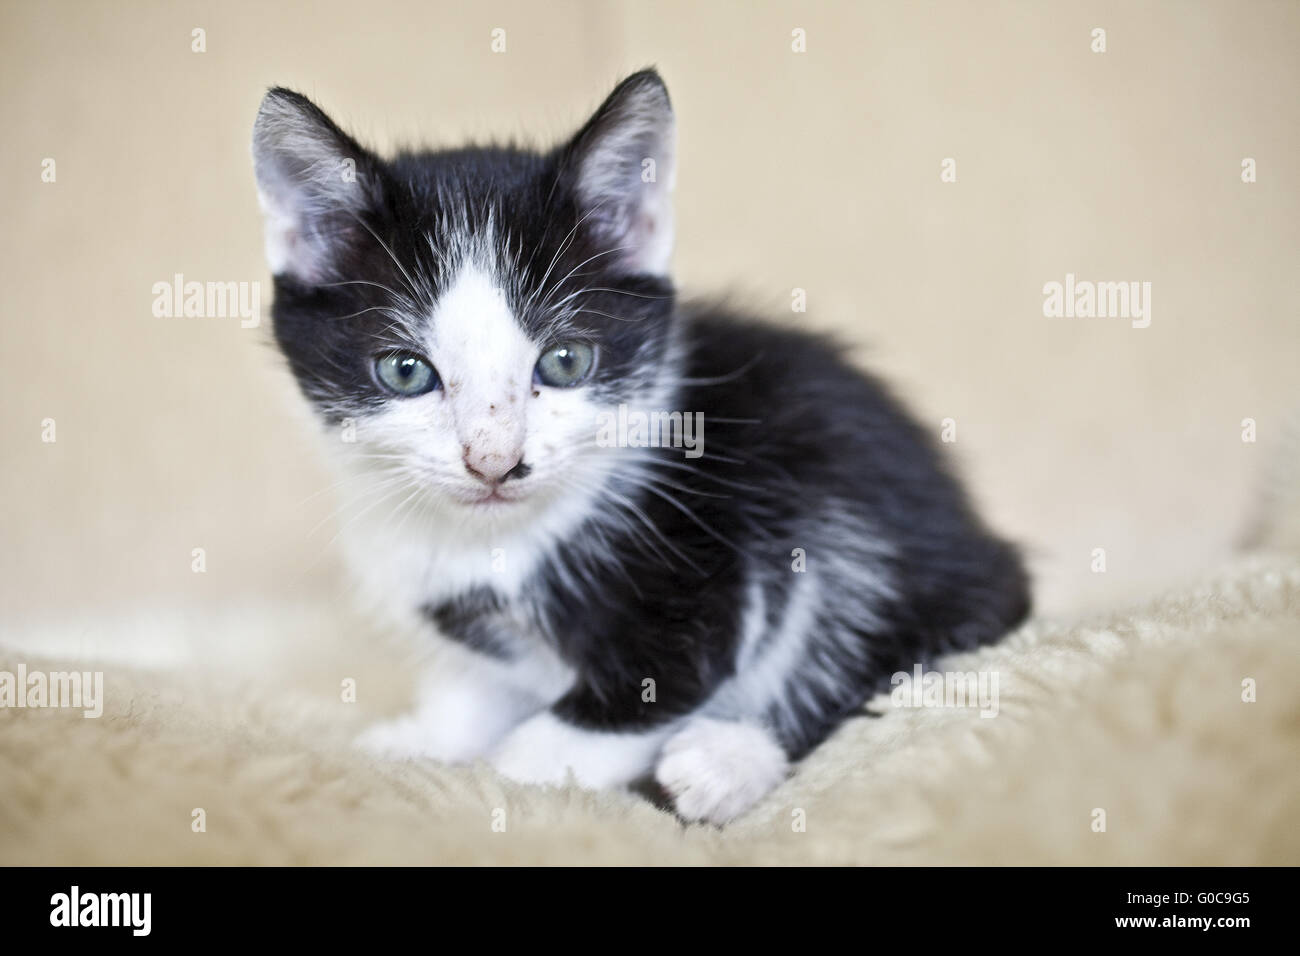 domestic cat, house cat, portrait of a kitty - Stock Image